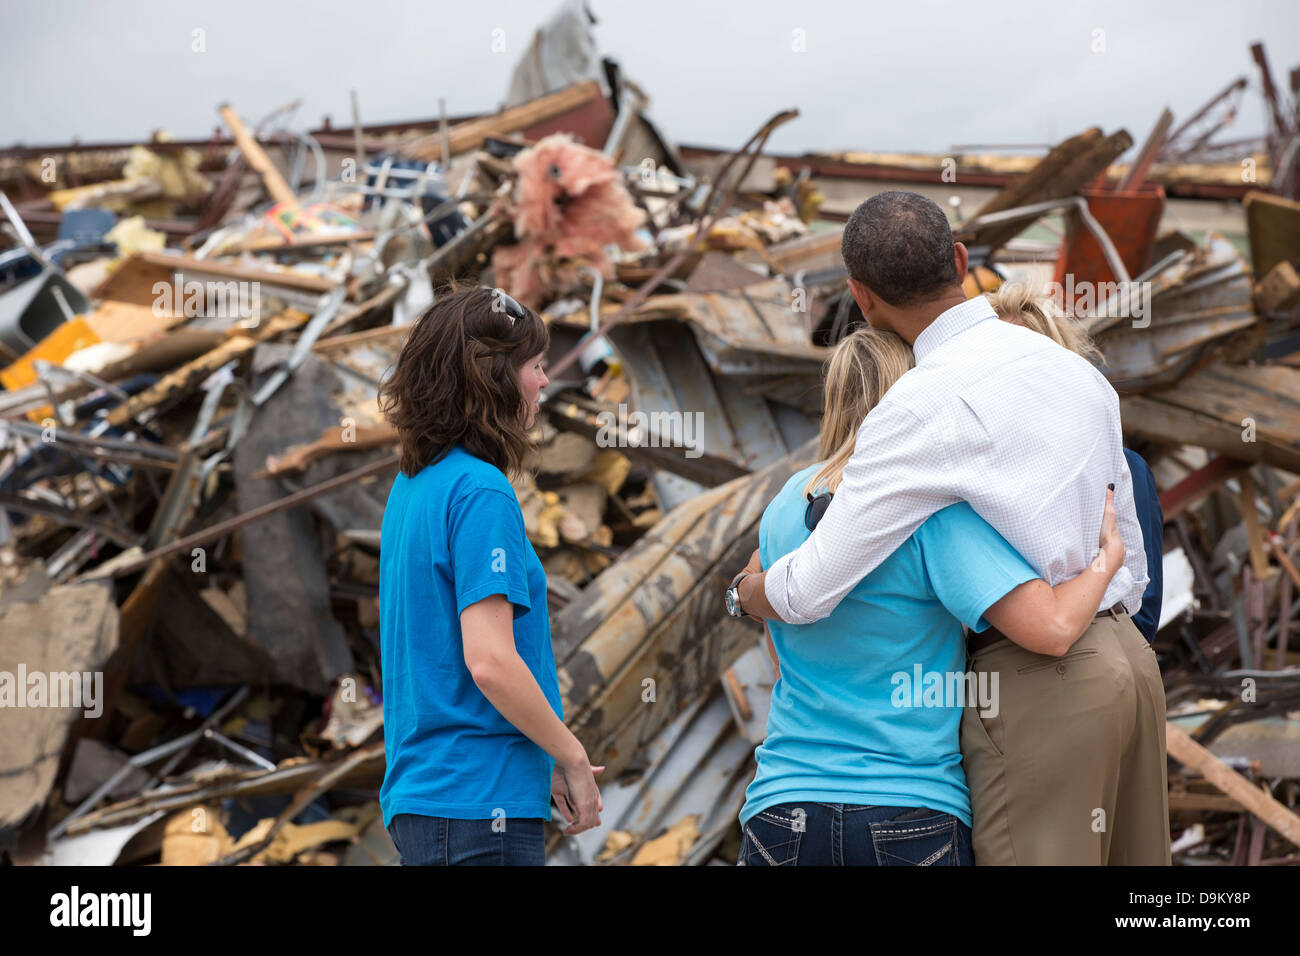 US President Barack Obama hugs Amy Simpson, principal of Plaza Towers Elementary School, outside what remains of - Stock Image